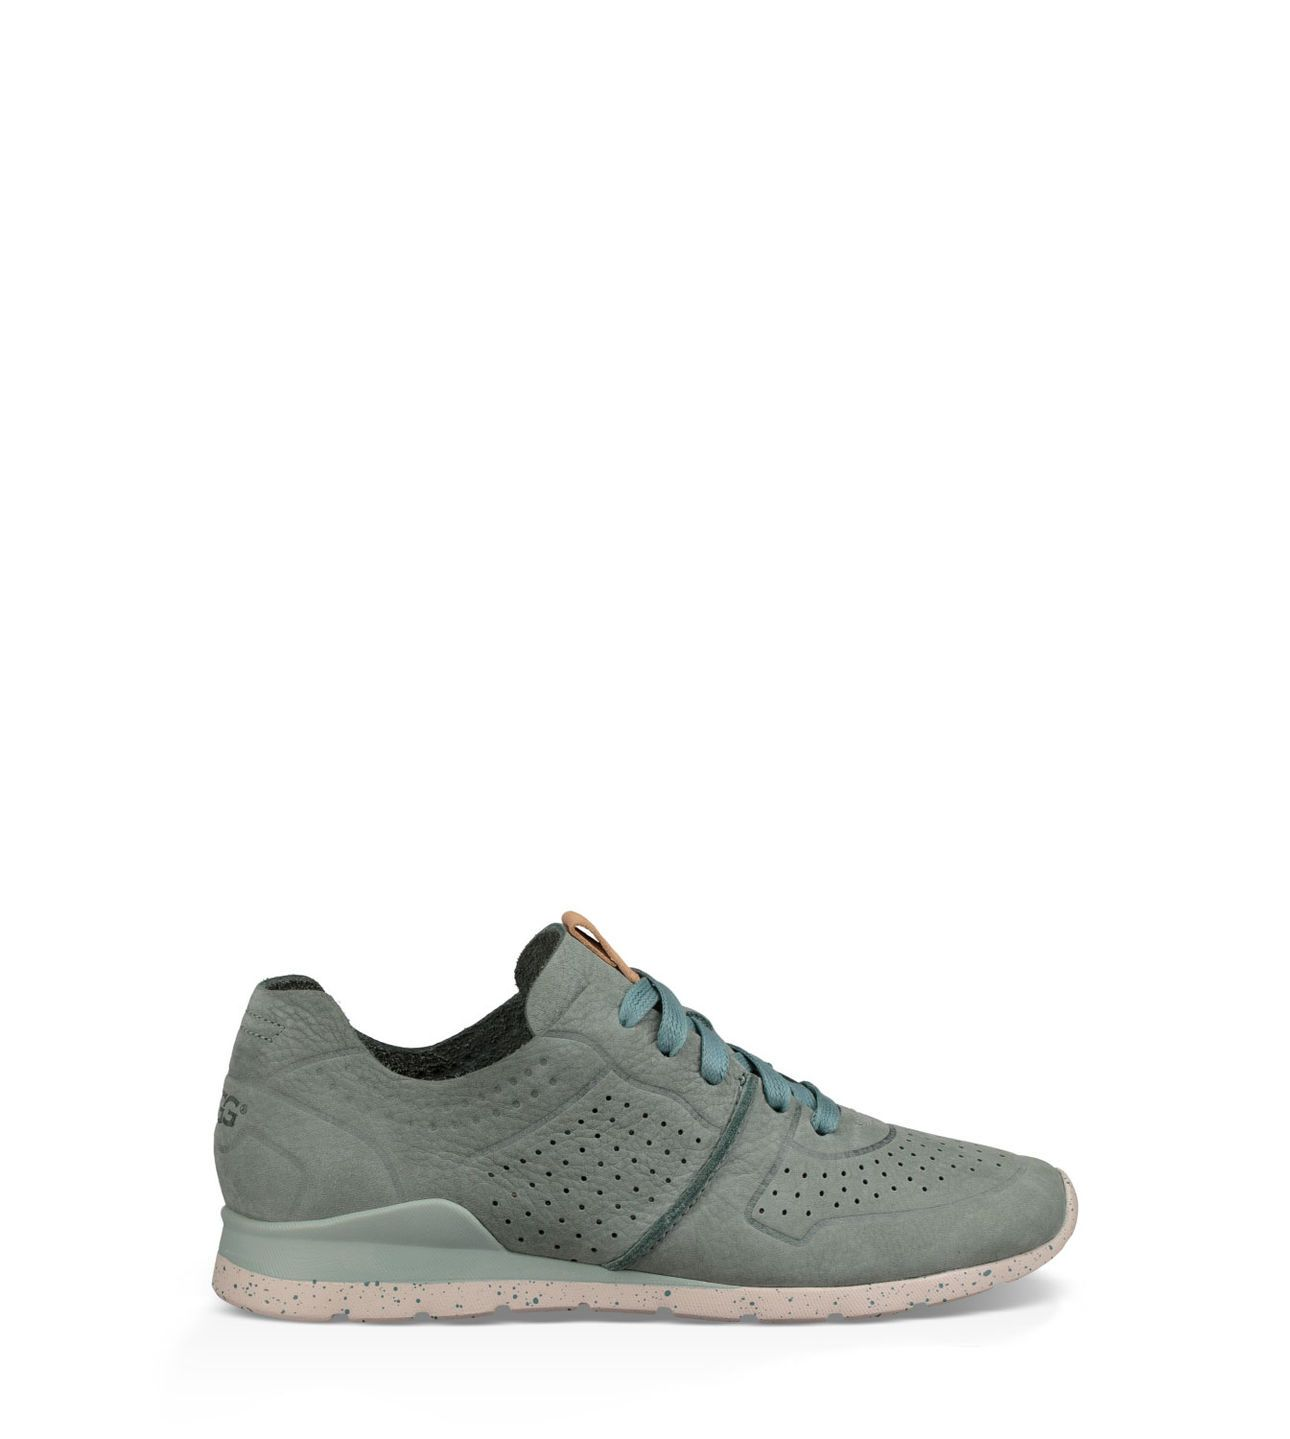 05200ba4725 Women's Share this product Tye Sneaker | Clothes + Thangs | Womens ...